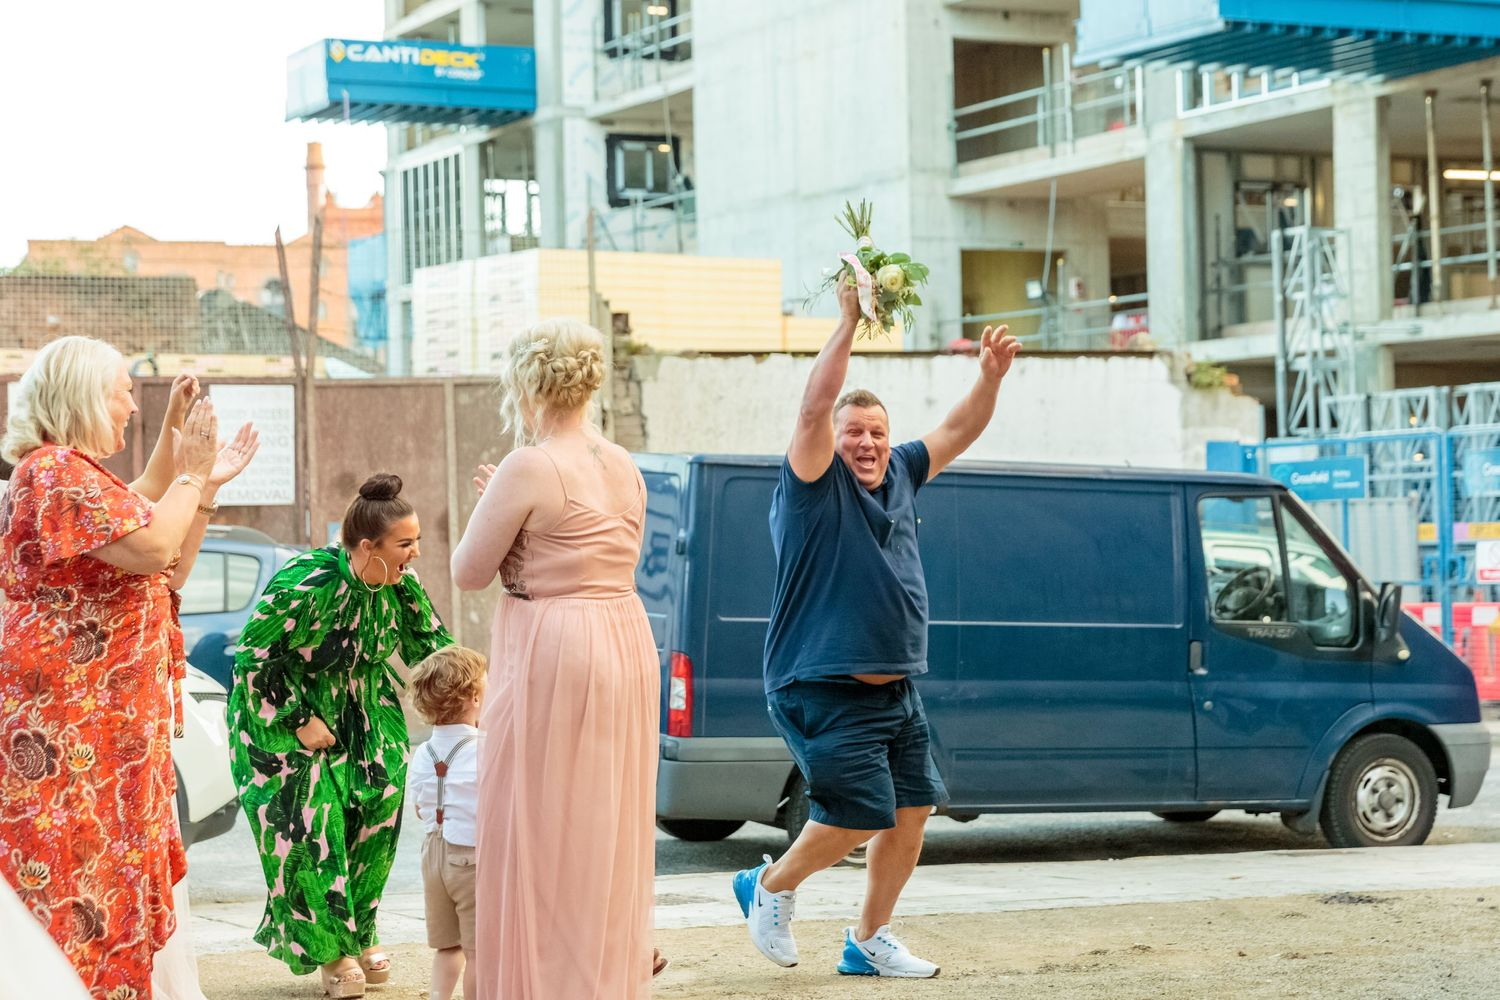 a man in shorts and t shirt at the back appears from nowhere to catch the bouquet arms in the air to celebrate